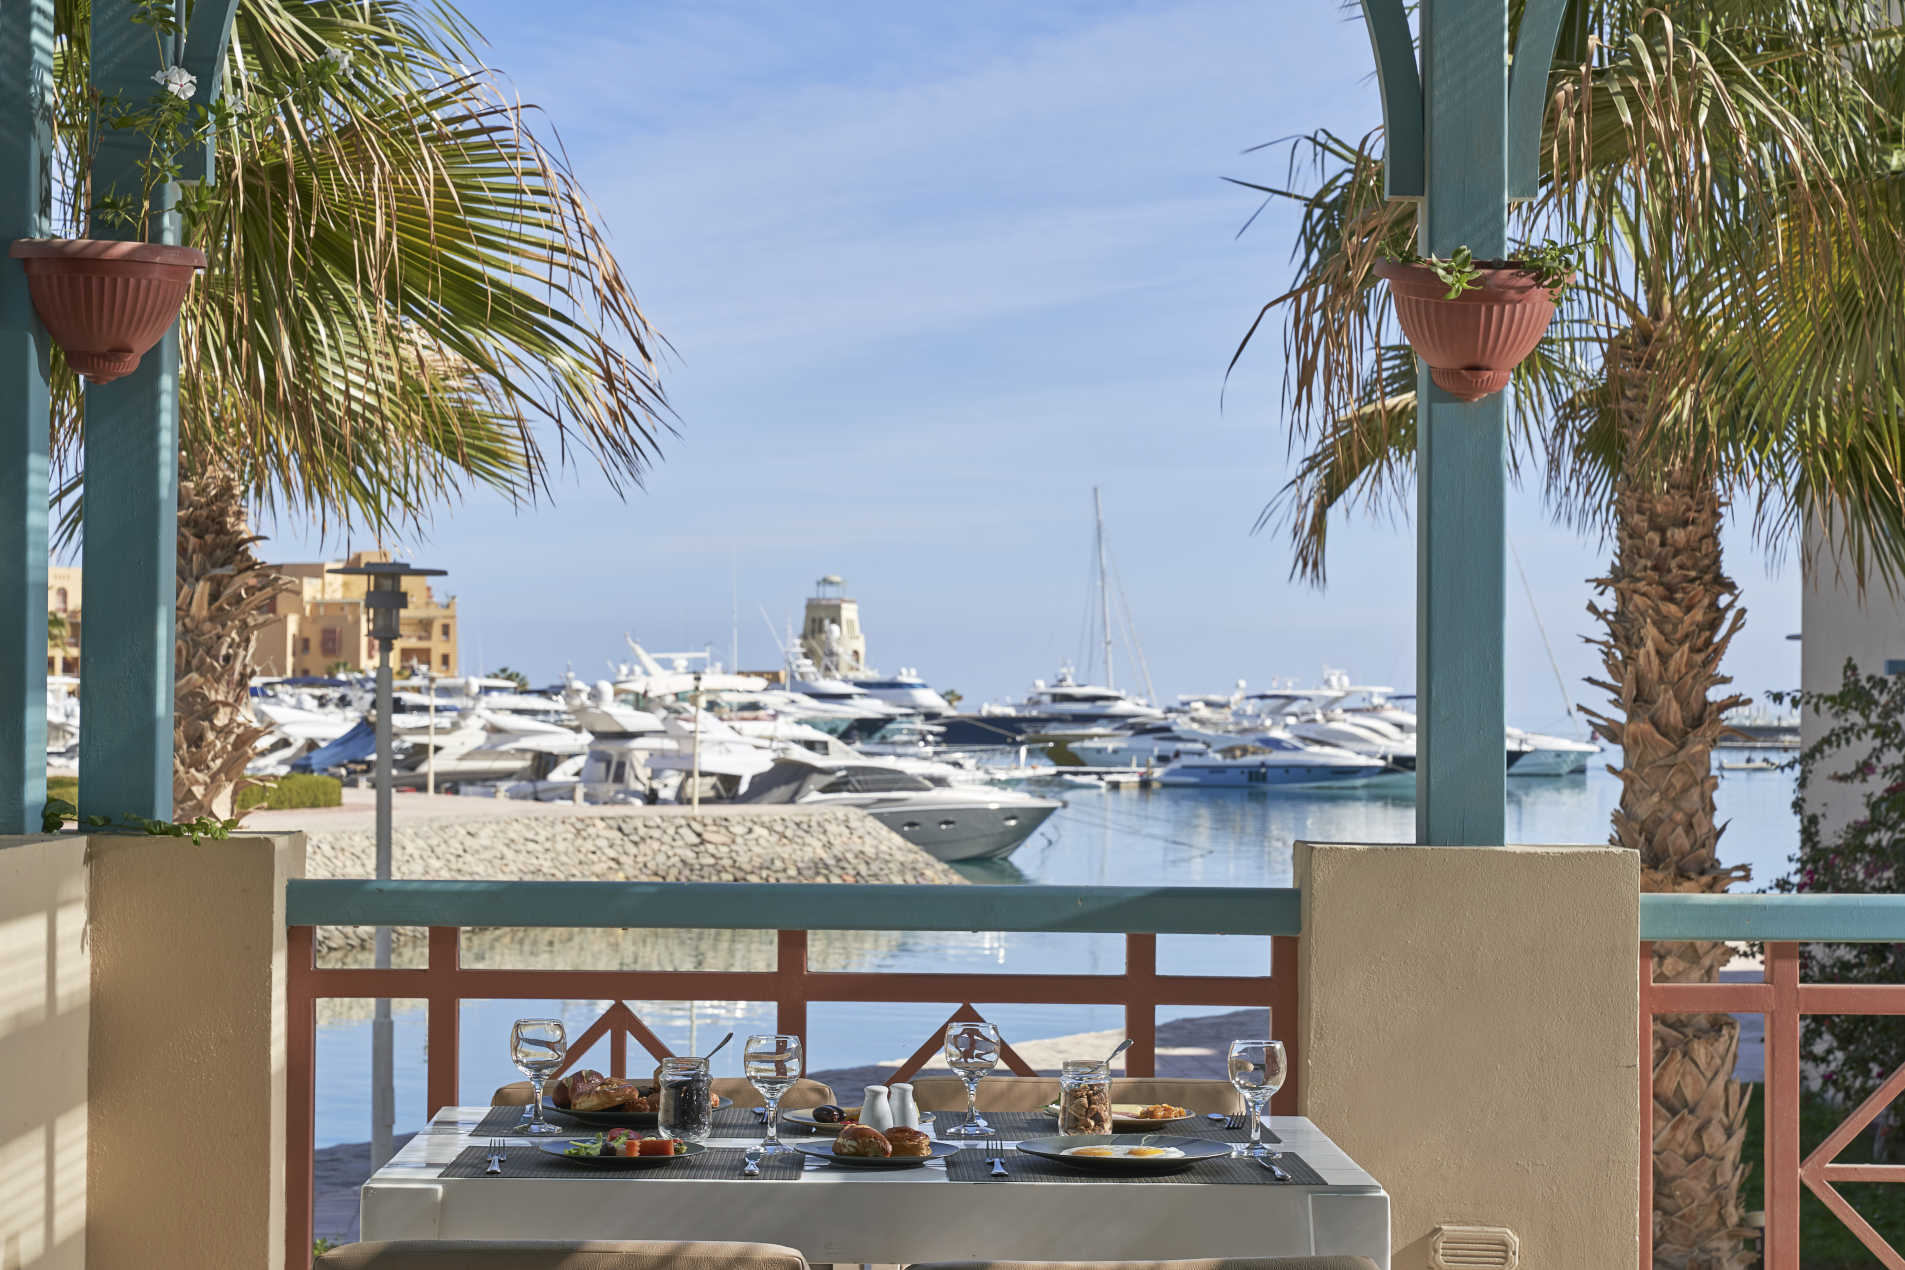 Breakfast at Mosaique hotel restaurant terrace with the fresh breeze of Red Sea and El Gouna Marina view